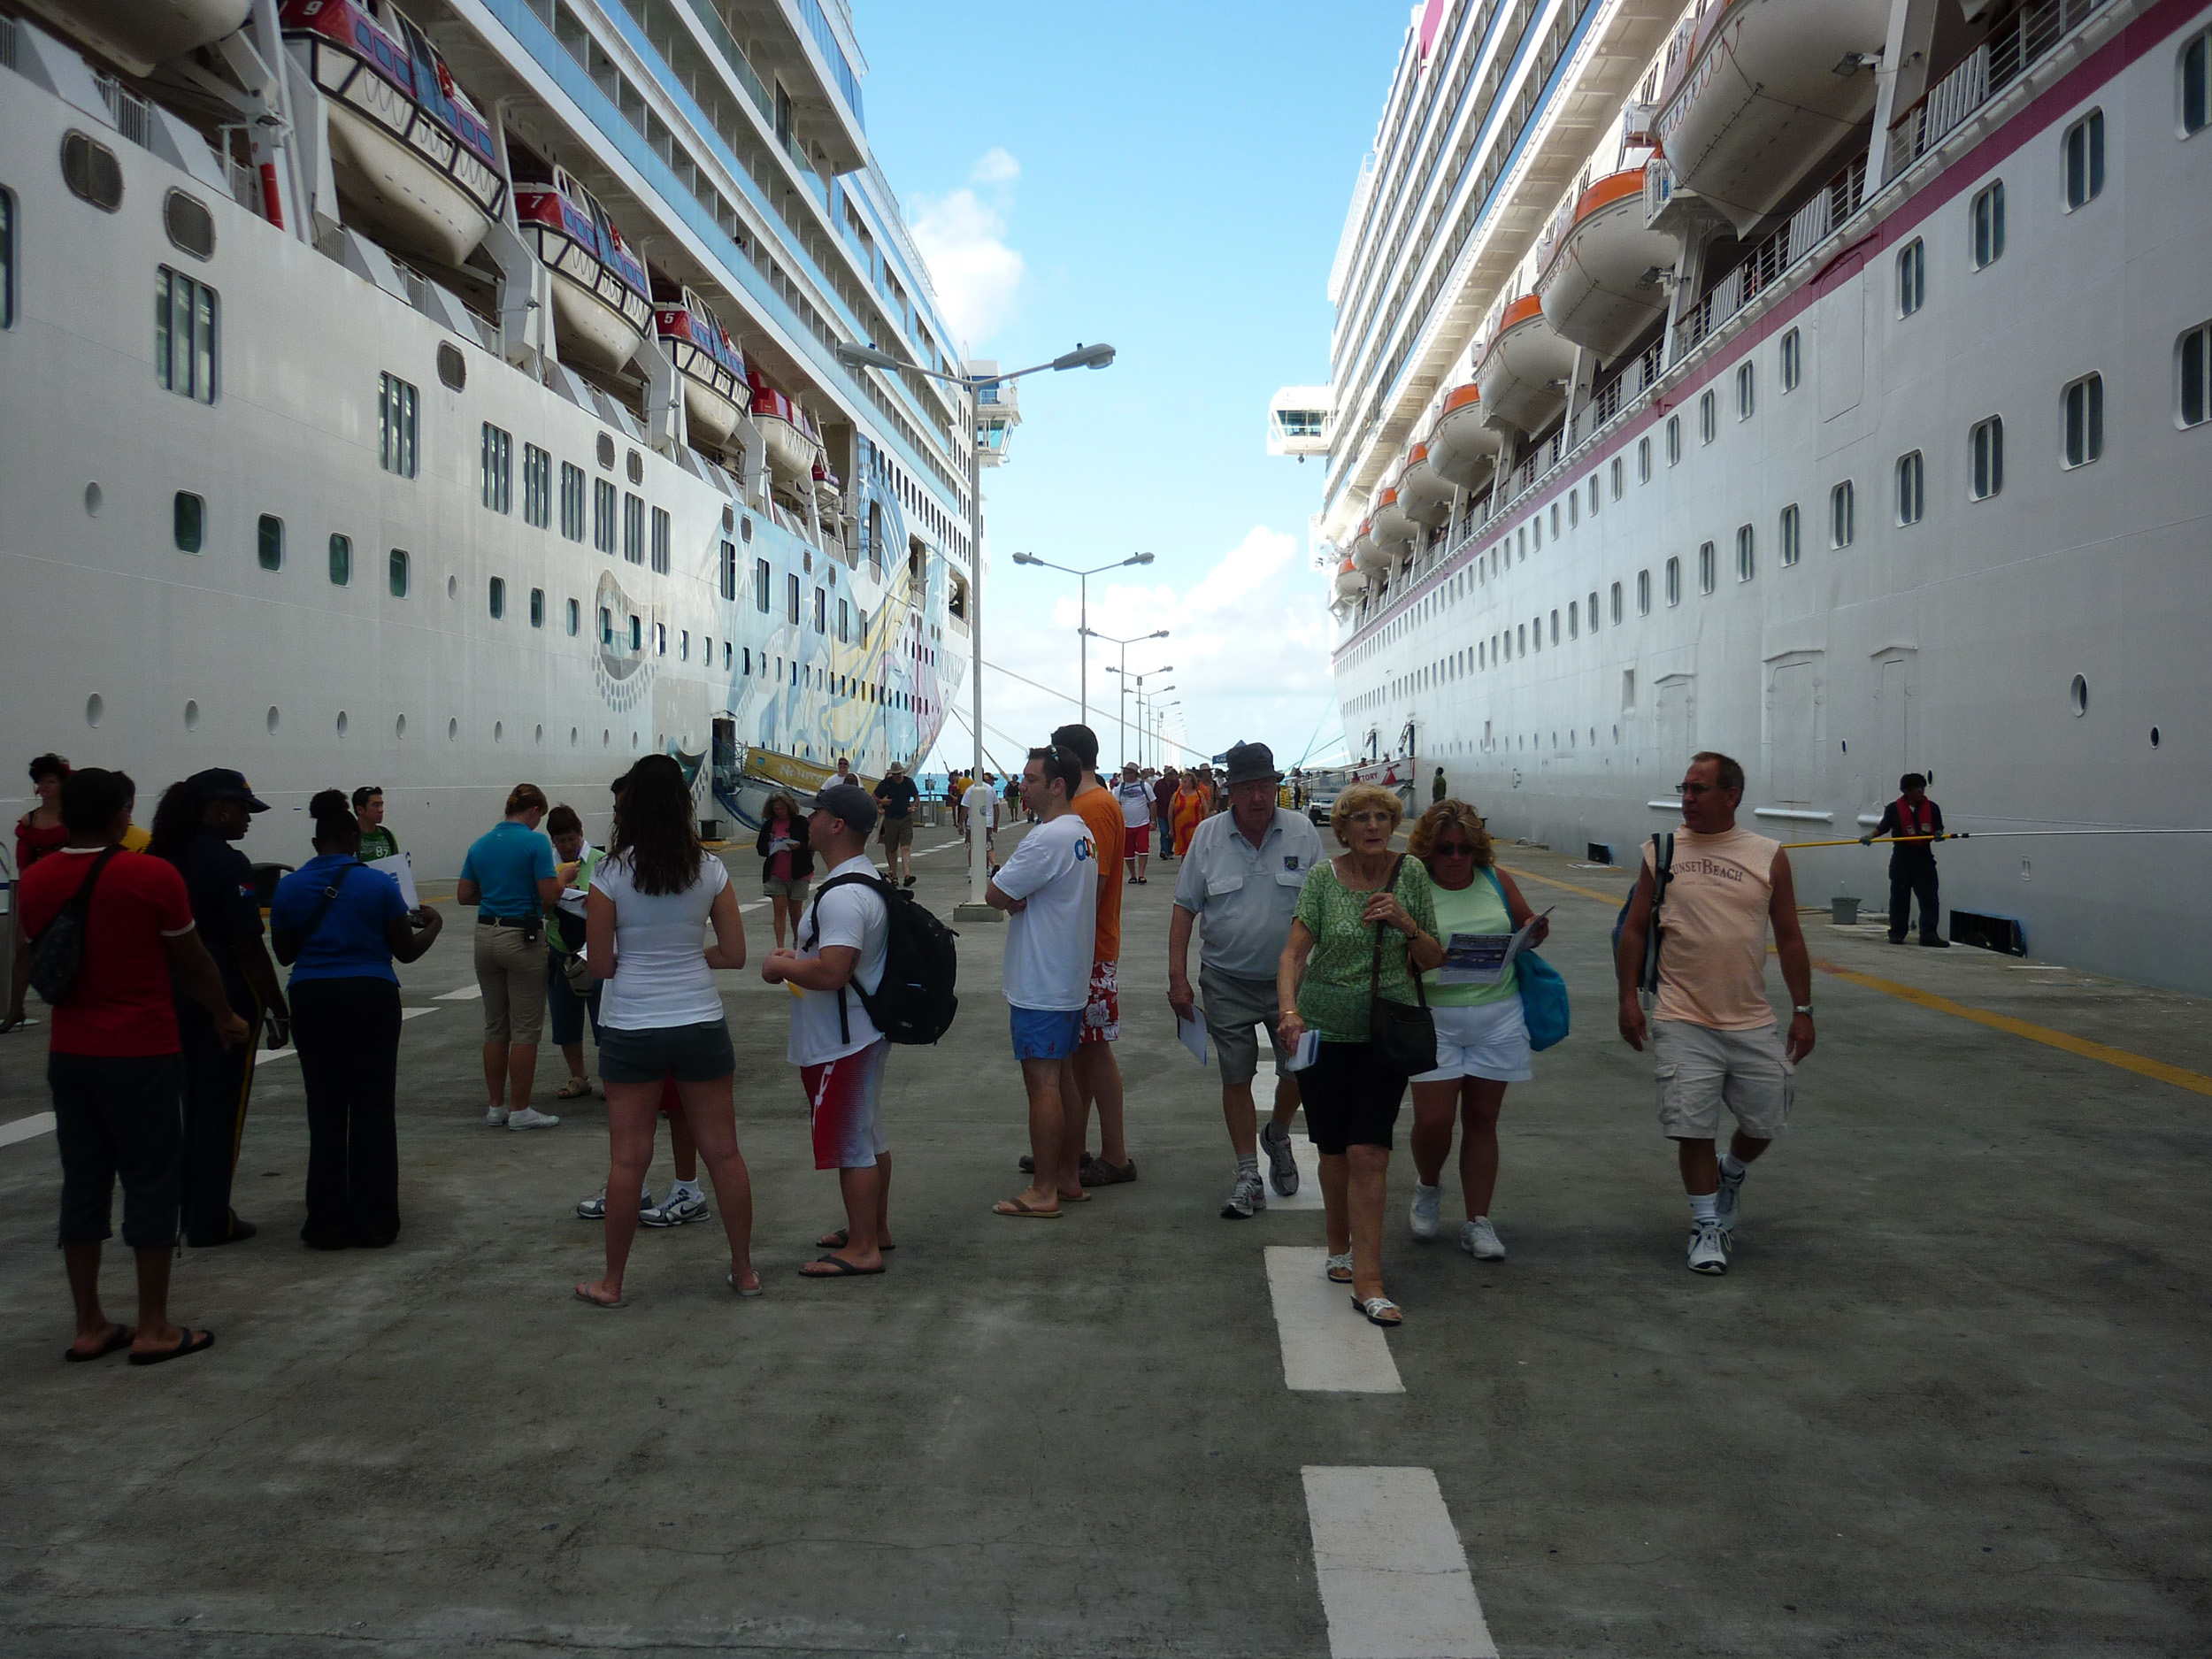 passengers boarding a cruise ship